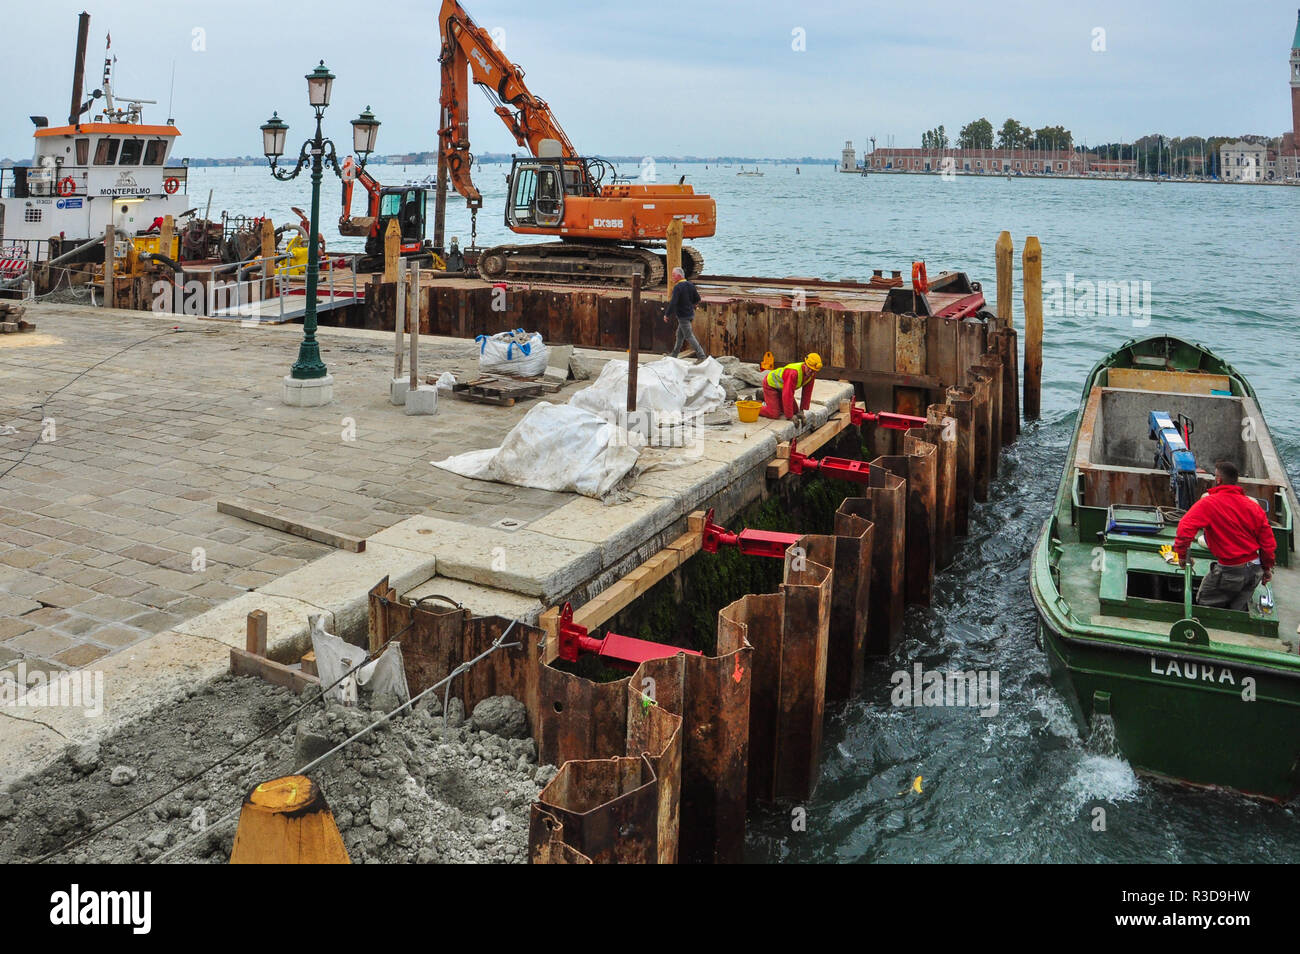 Construction work to improve waterfront, Venice, Italy - Stock Image